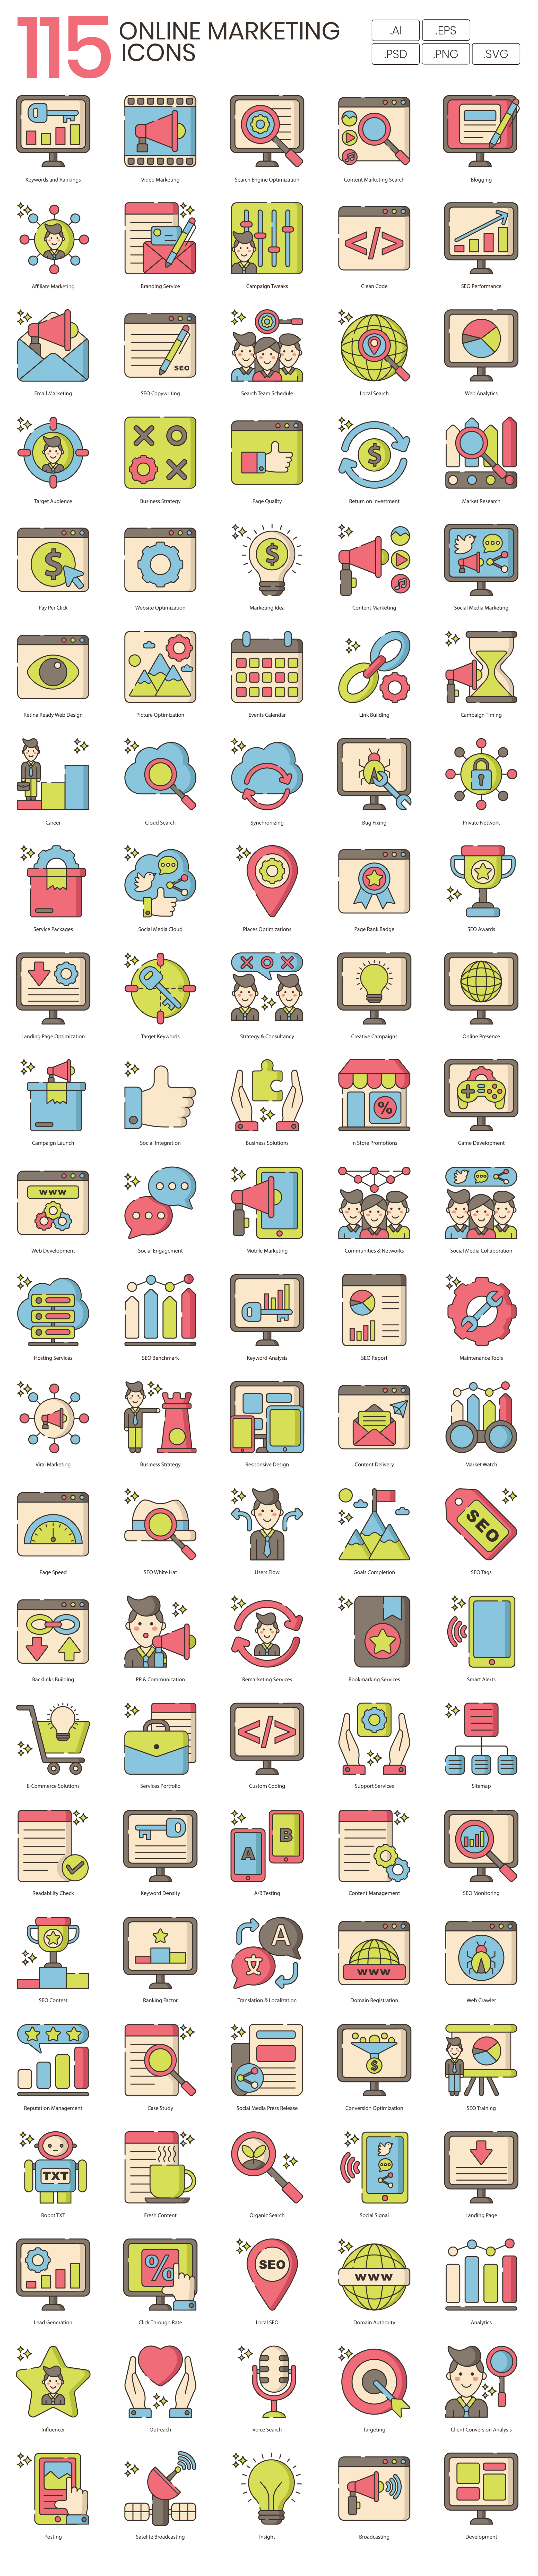 Online Marketing Icons Hazel Full-Preview